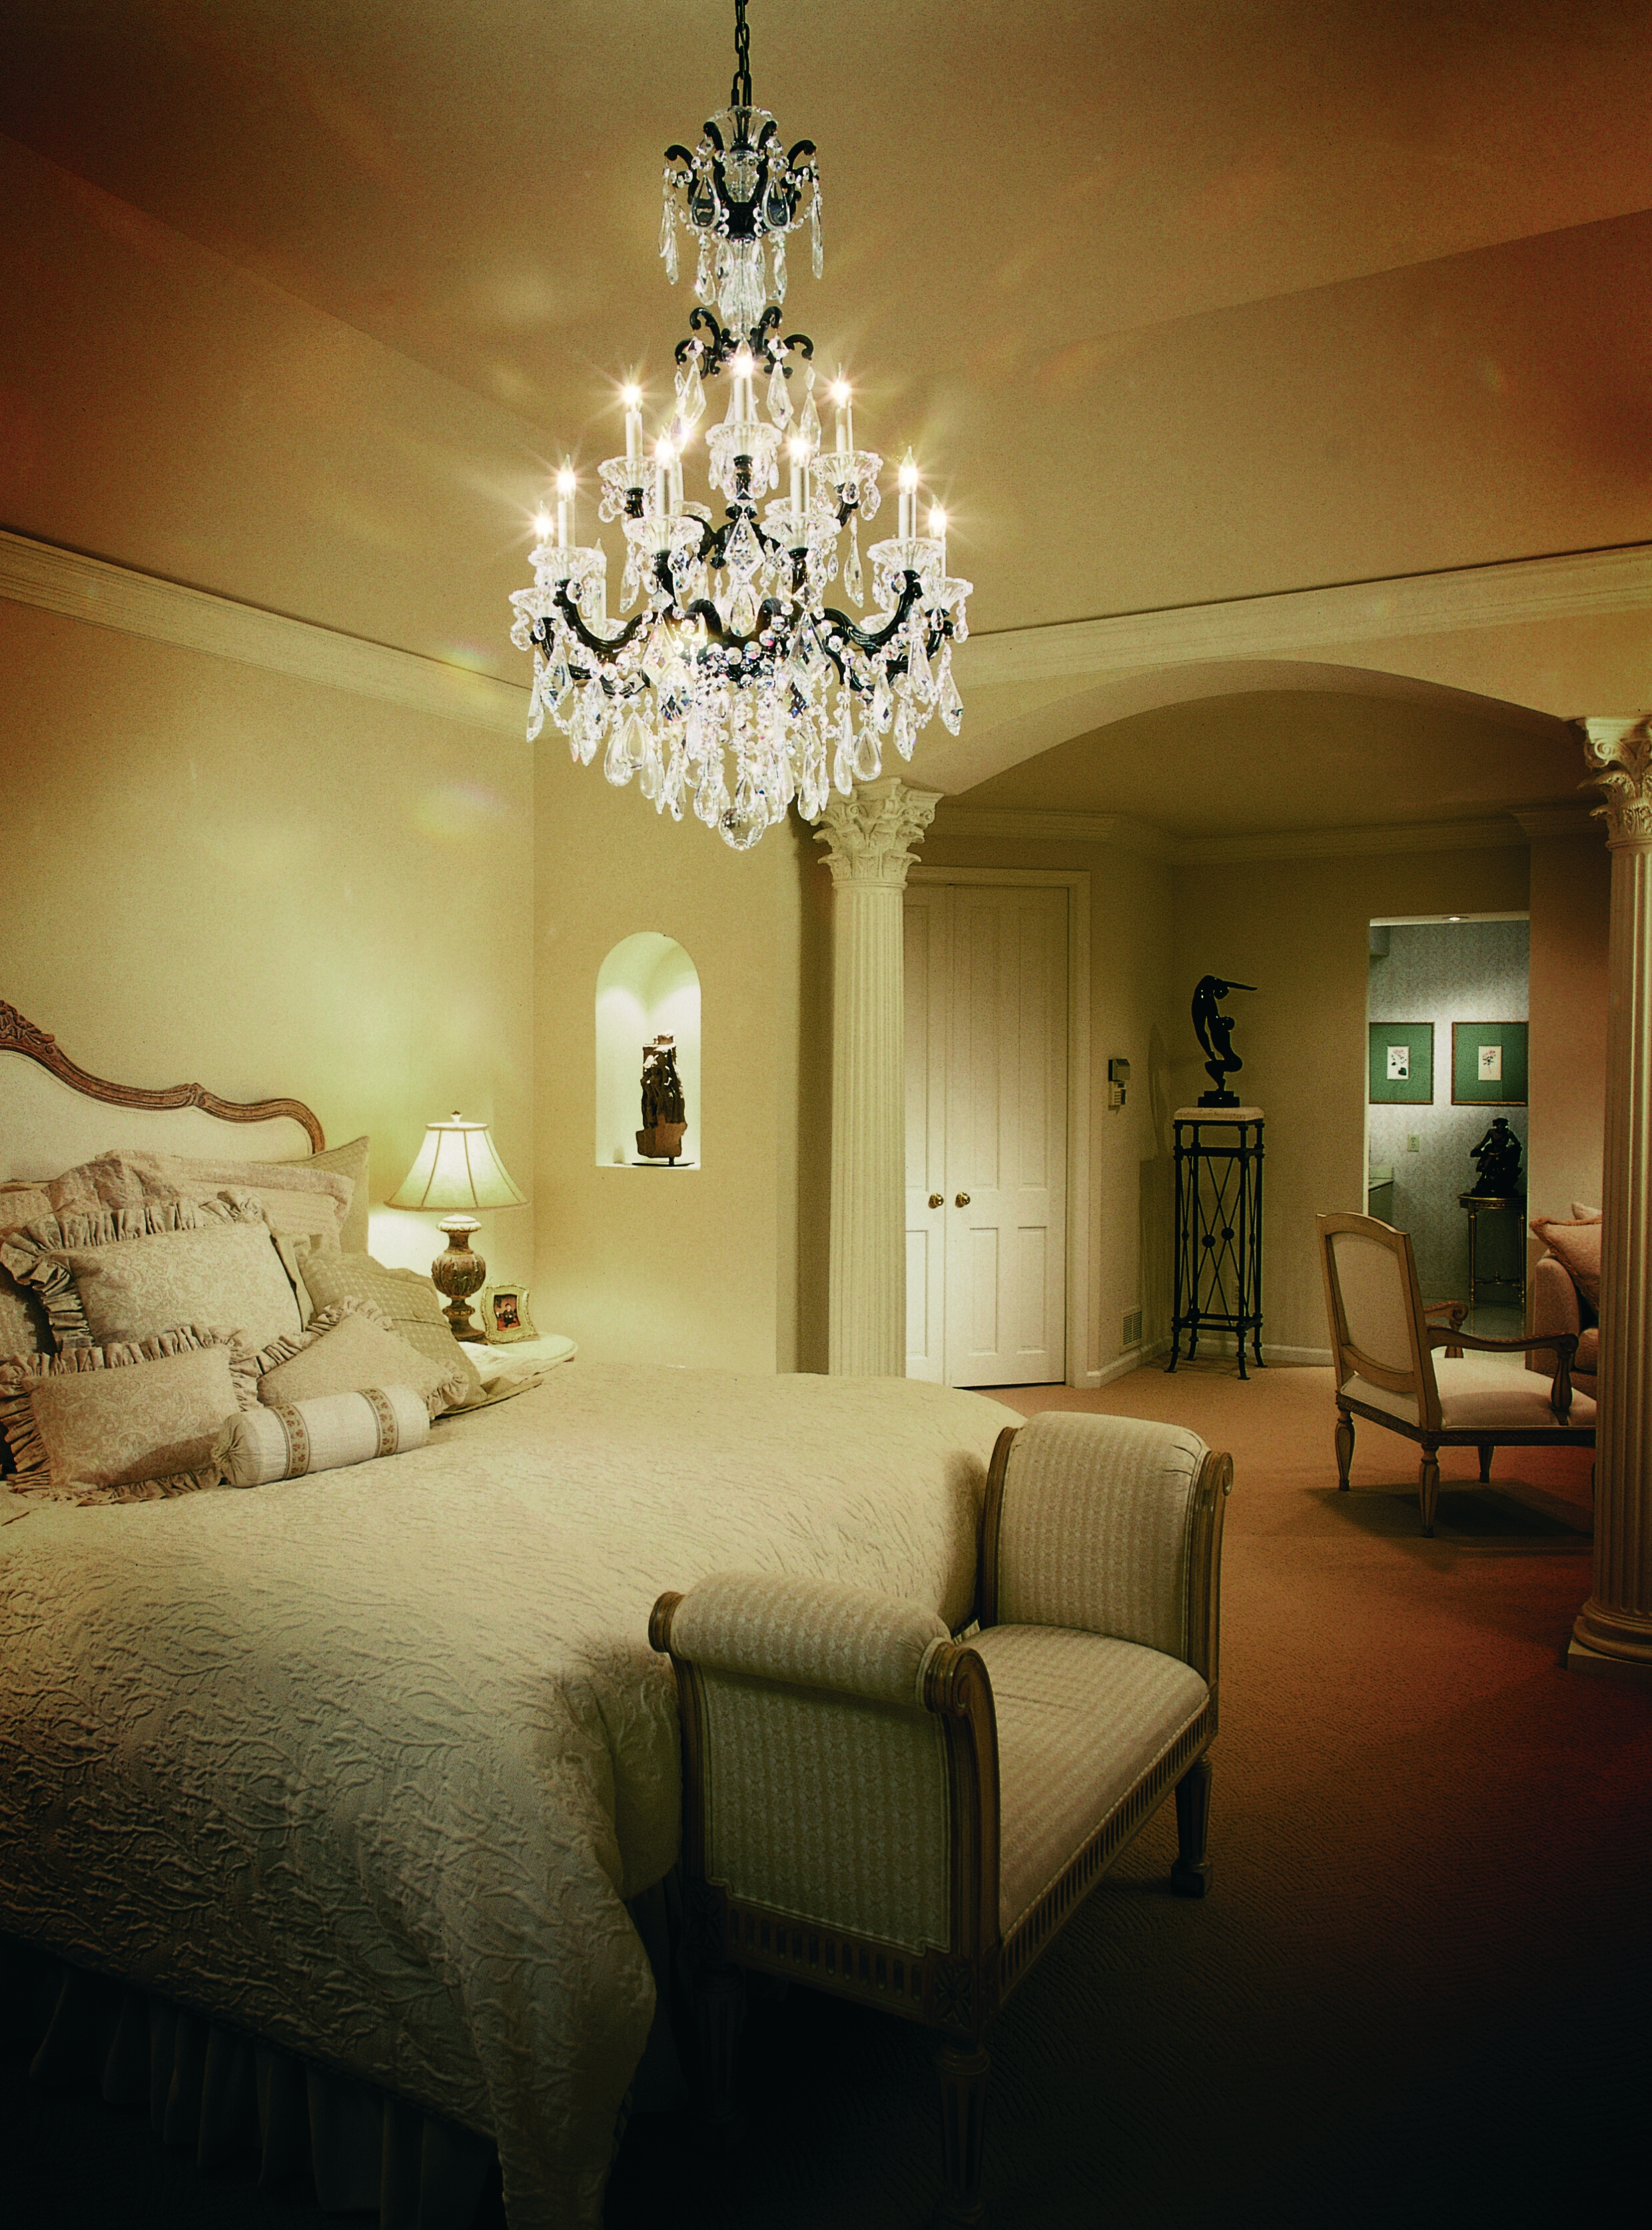 Lighting Breathtaking Chandelier From Schonbek For Luxury Home Intended For Wall Mounted Chandeliers (View 2 of 25)